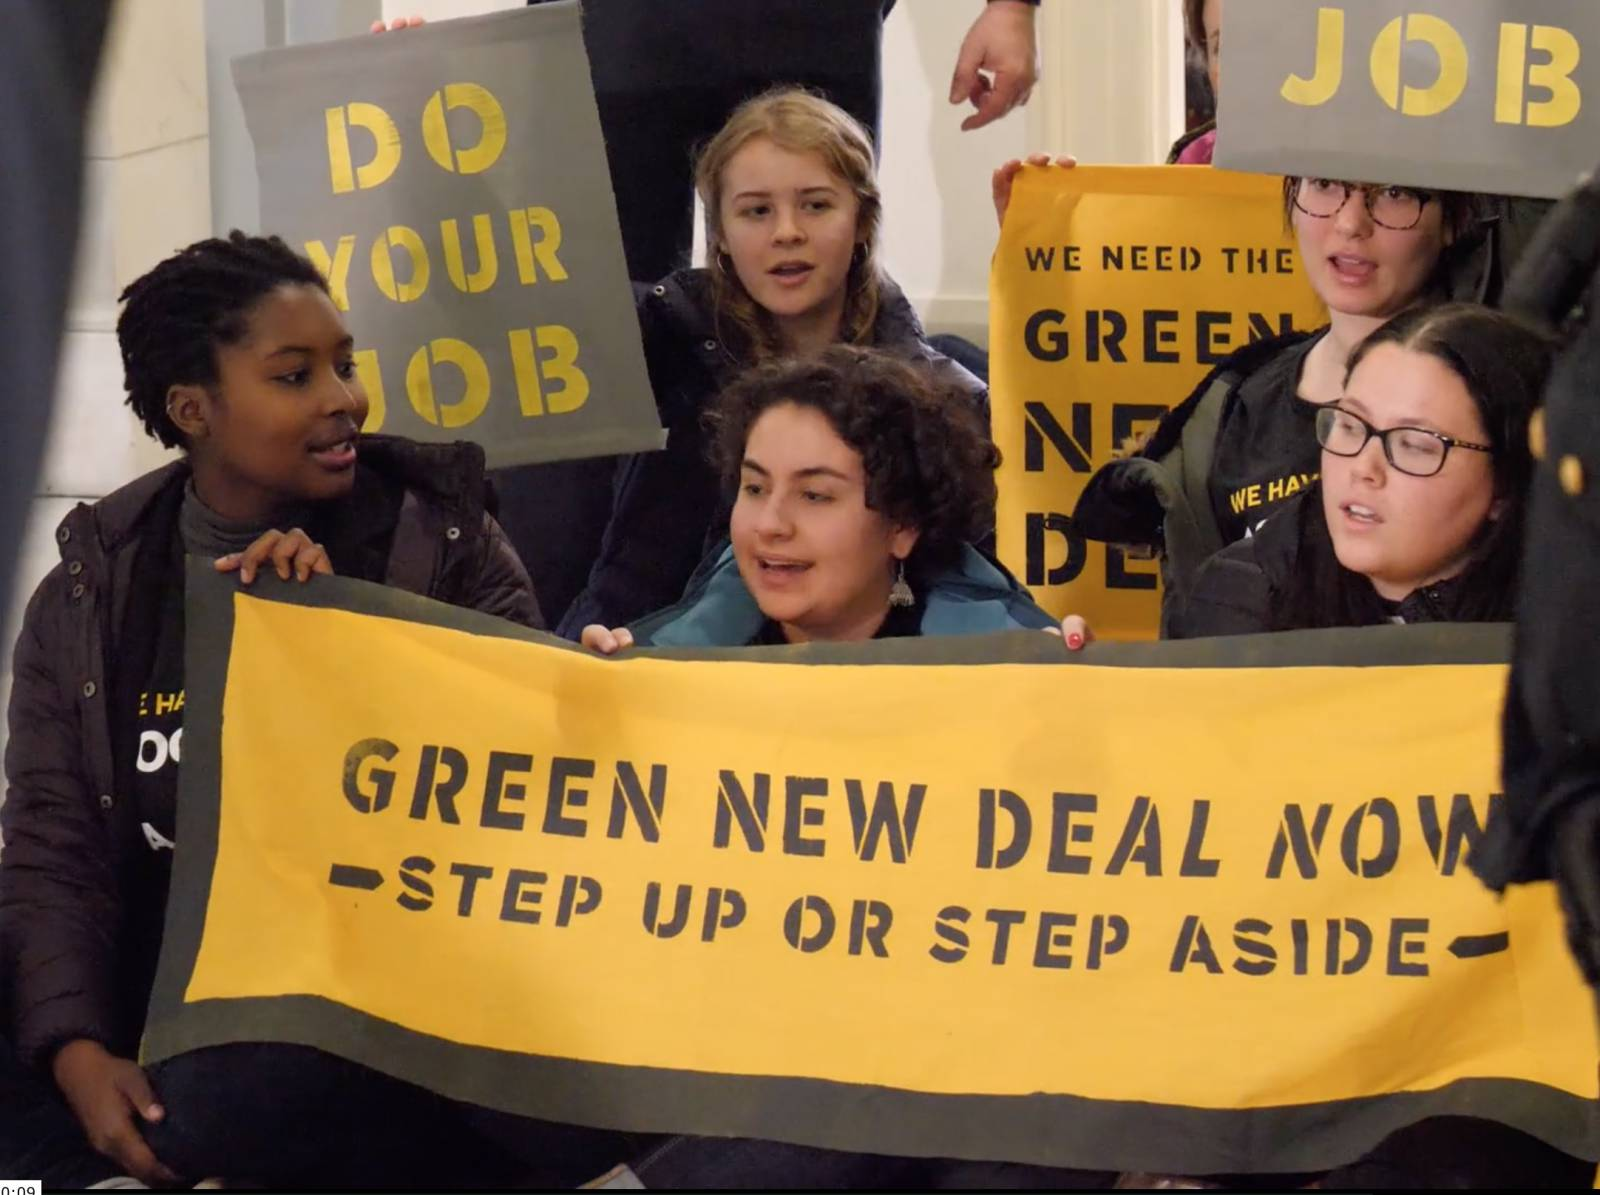 The Green New Deal: A real solution or political theater?